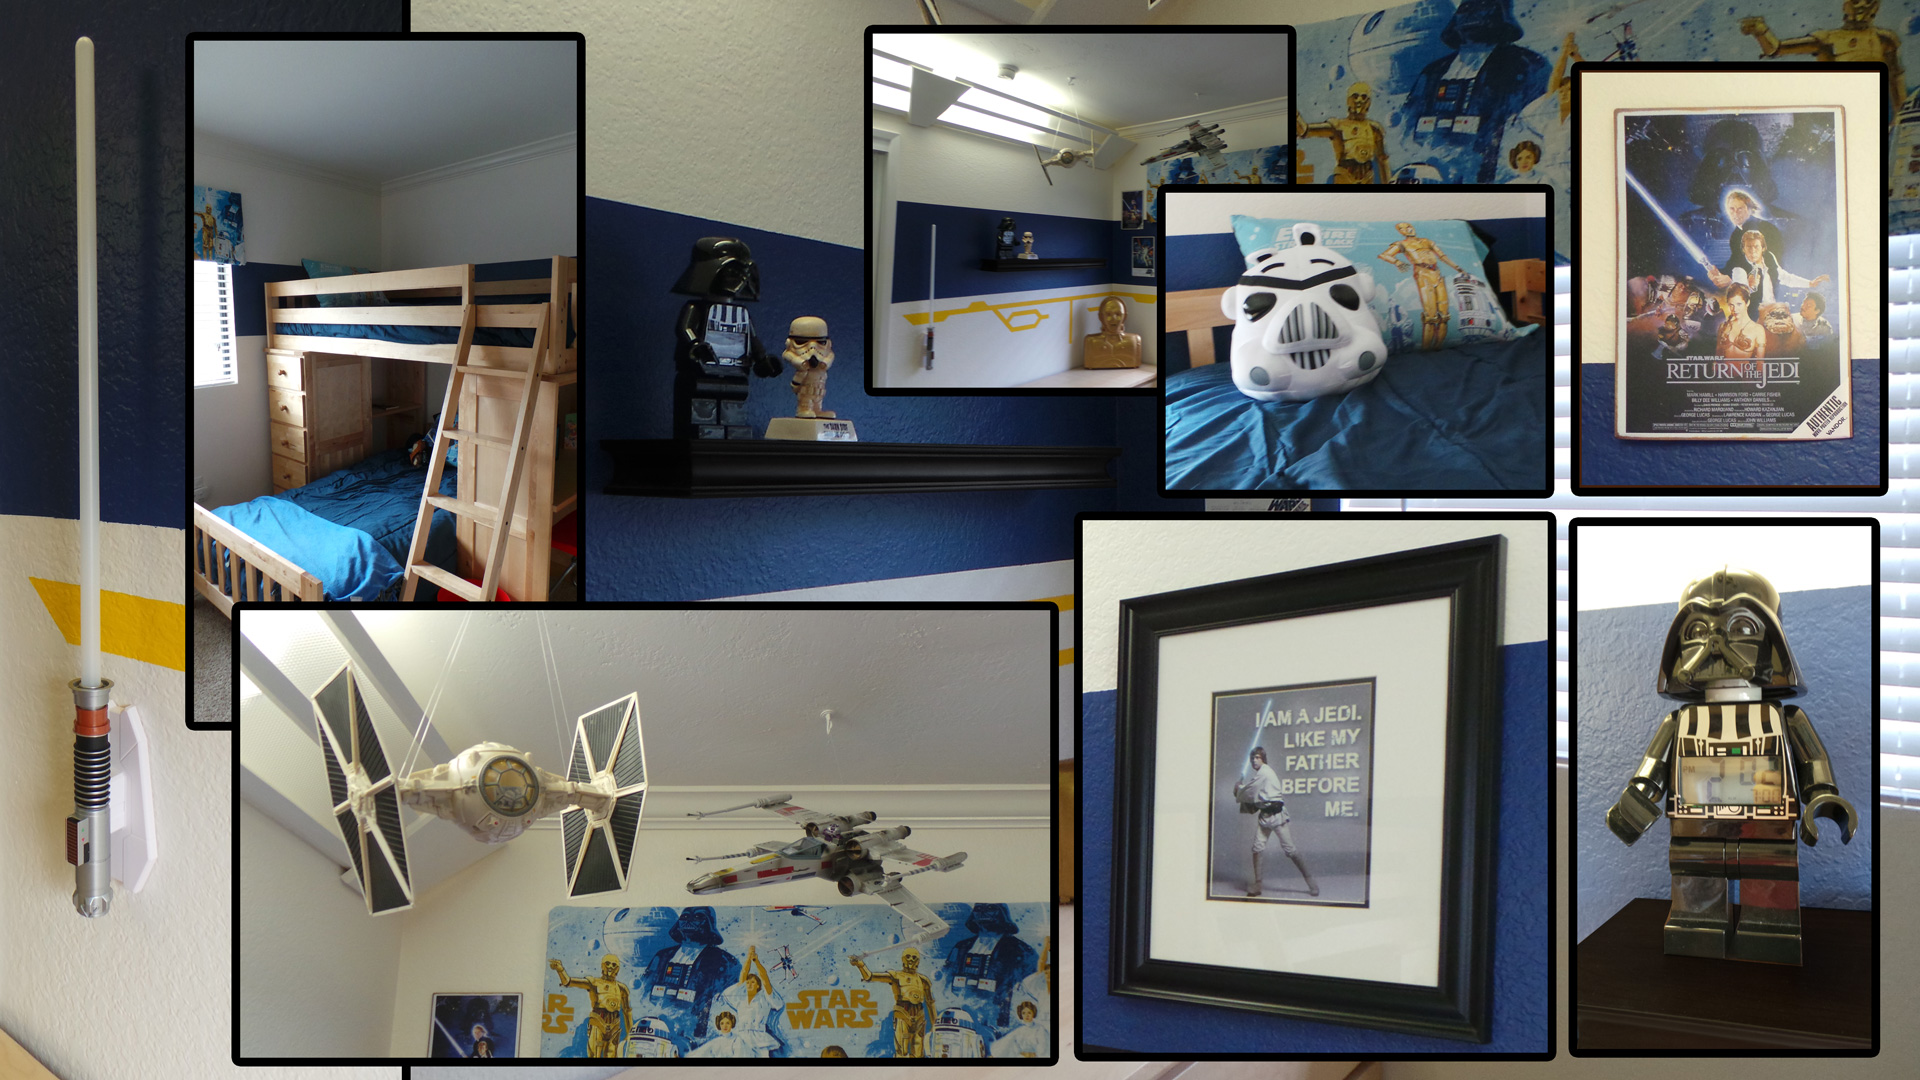 Star Wars Themed Bedroom Ideas Star Wars Room Highlights Along The Way